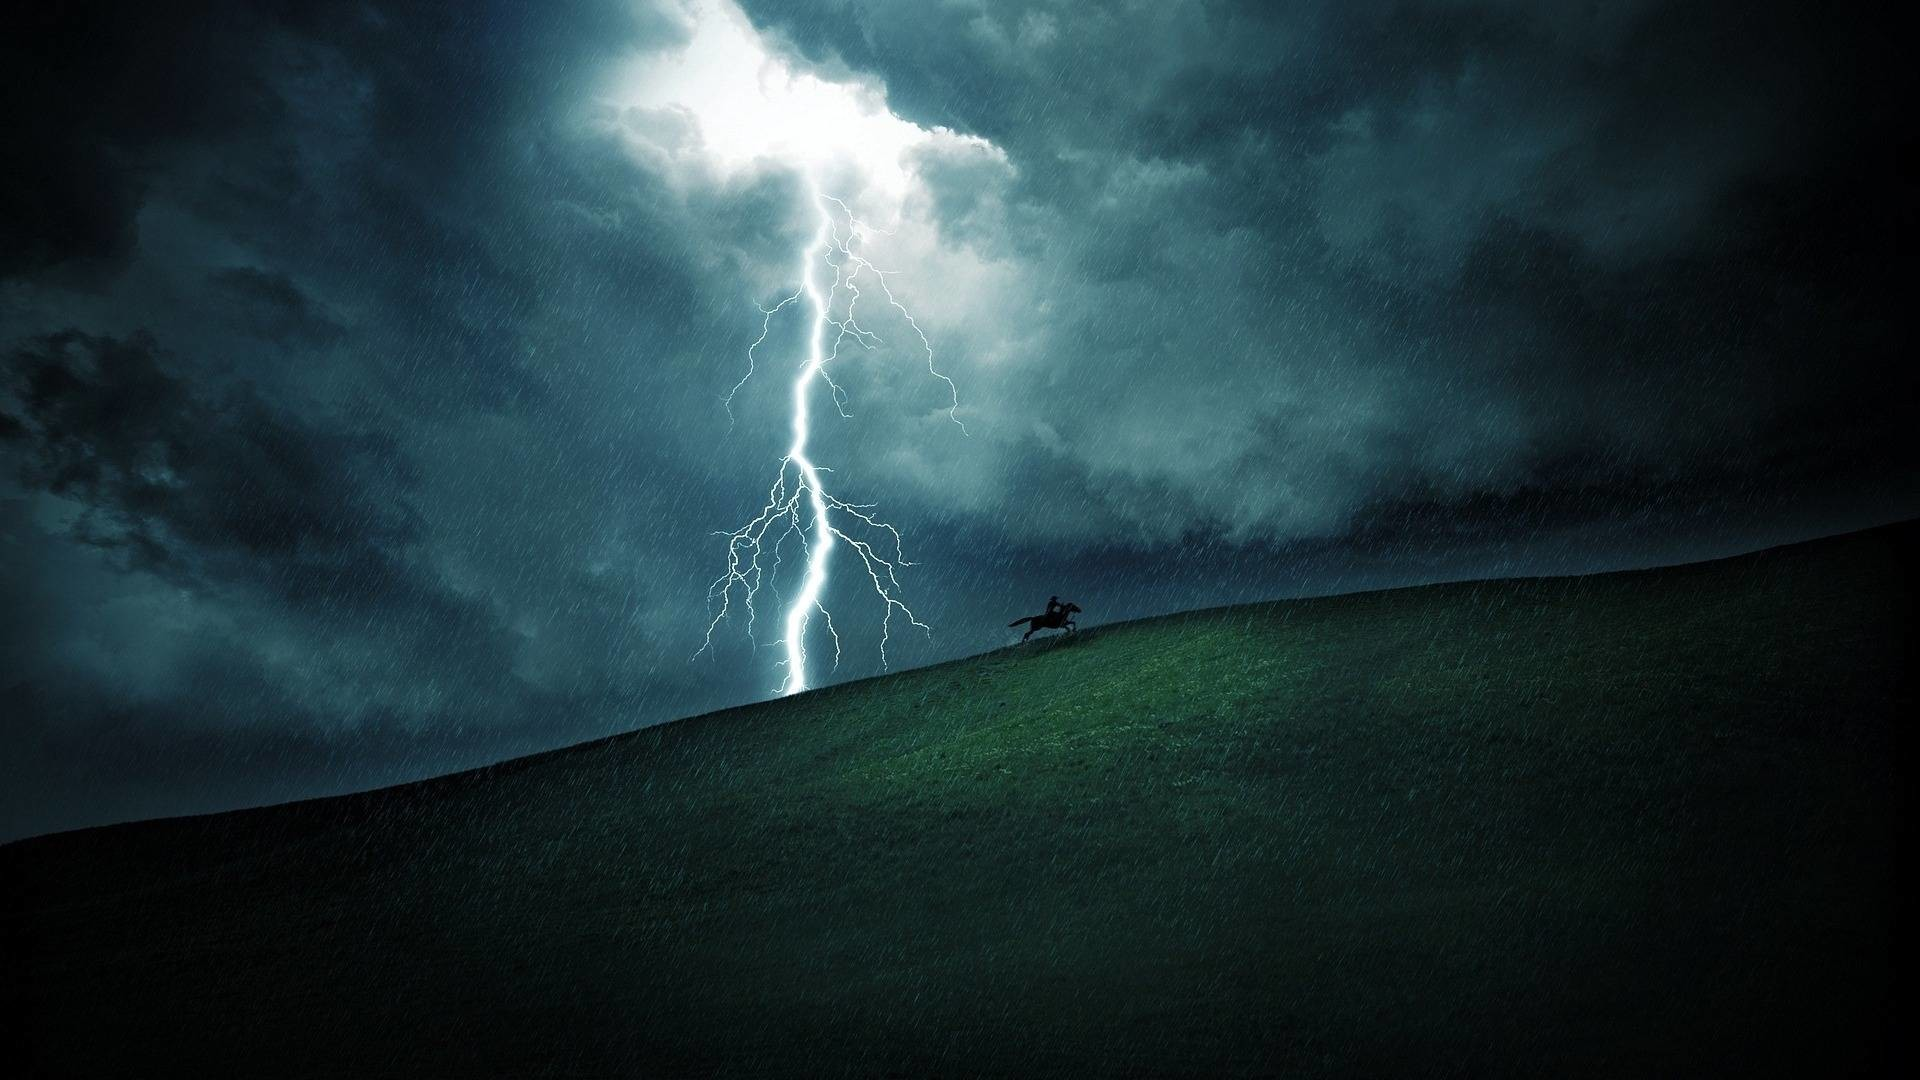 Thunderstorm Wallpaper – Free Android Application – Createapk.